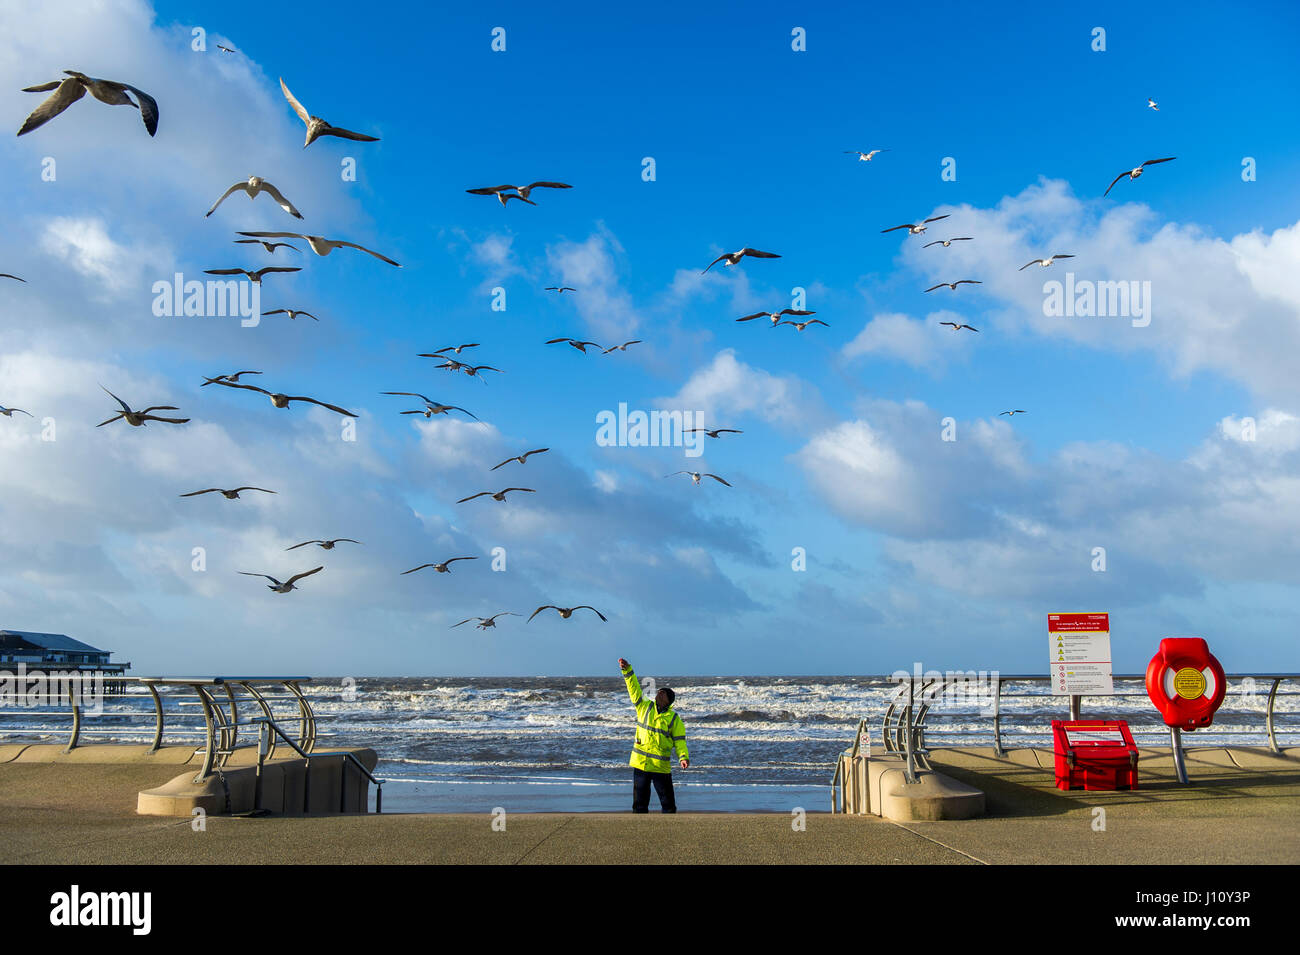 Seagulls in Blackpool, United Kingdom being fed by a man in a hi-vis jacket with a blue sky and copy space. - Stock Image